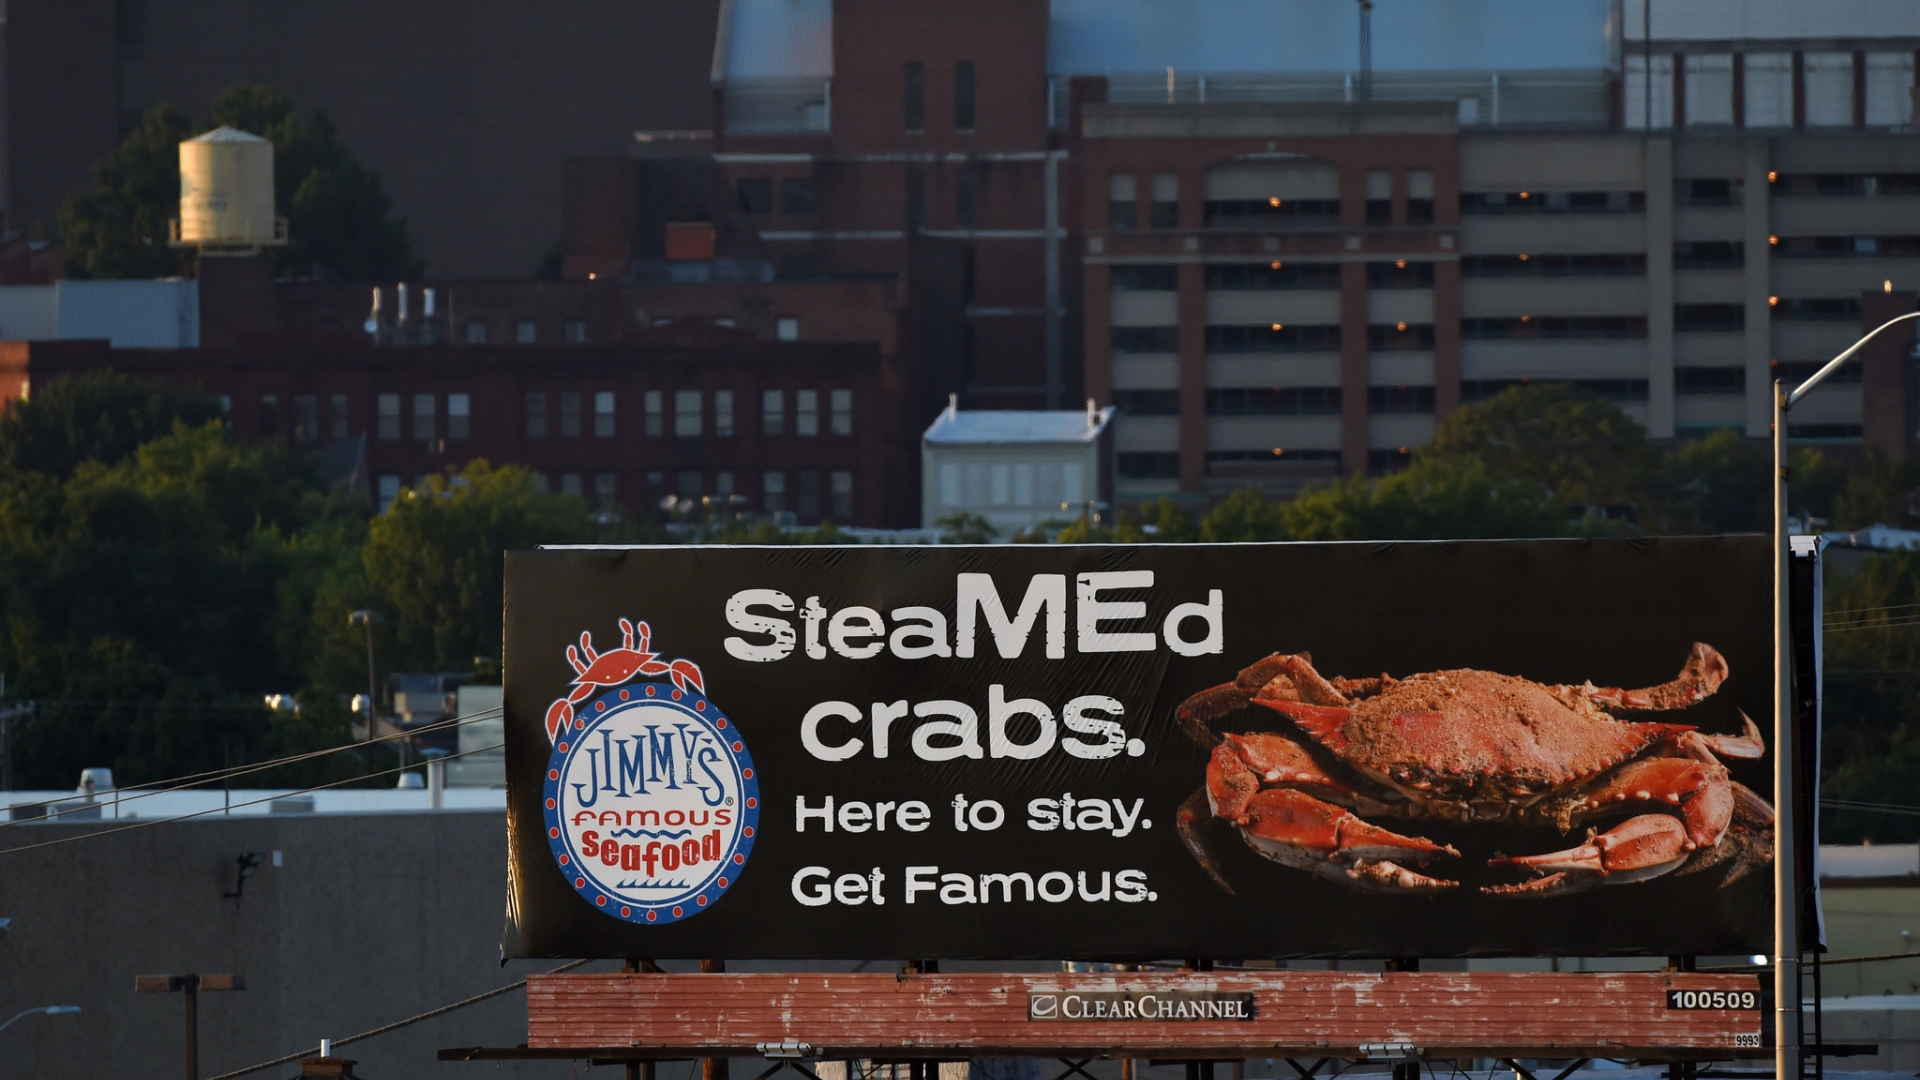 With Twitter and billboard, Jimmy's Famous Seafood wants to